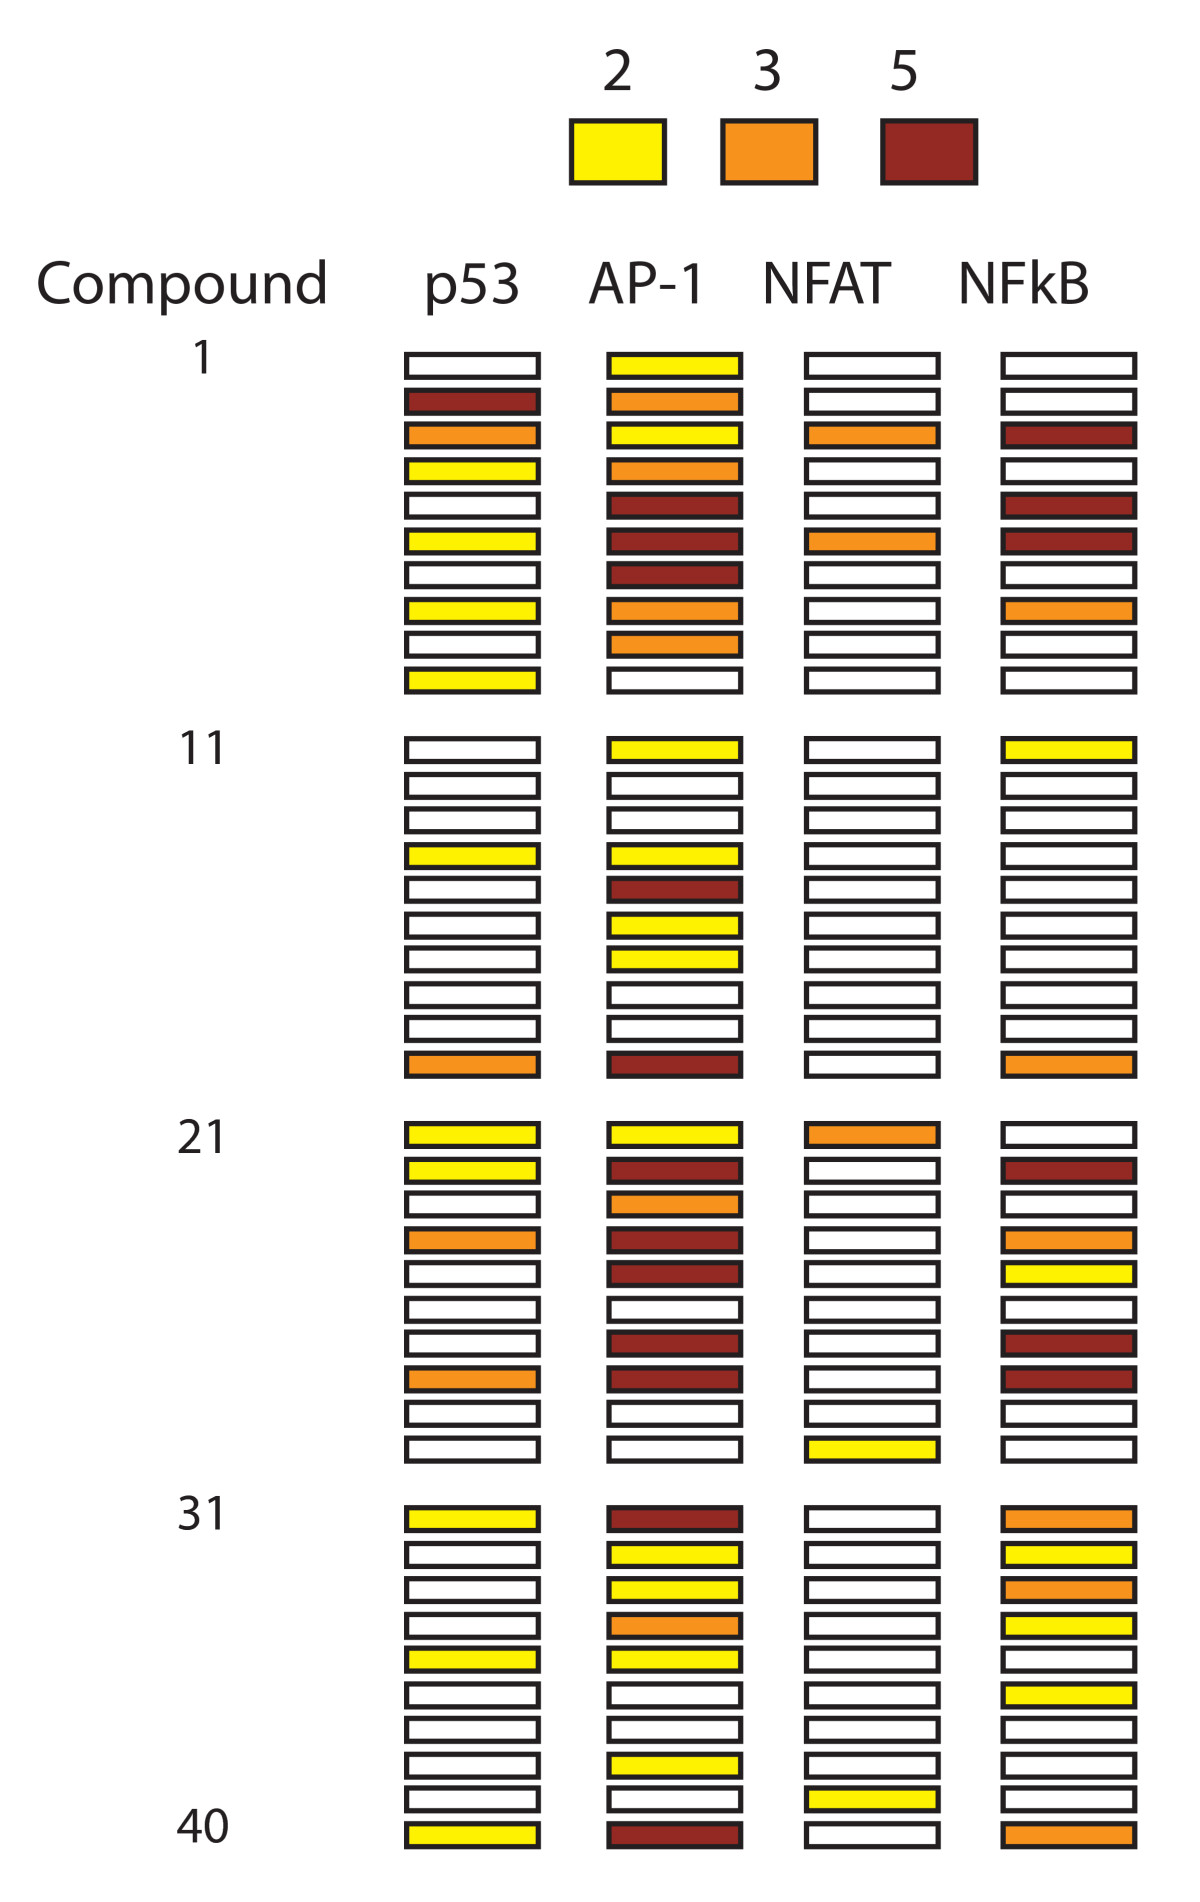 http://static-content.springer.com/image/art%3A10.1186%2F1472-6769-8-2/MediaObjects/12897_2008_Article_18_Fig1_HTML.jpg